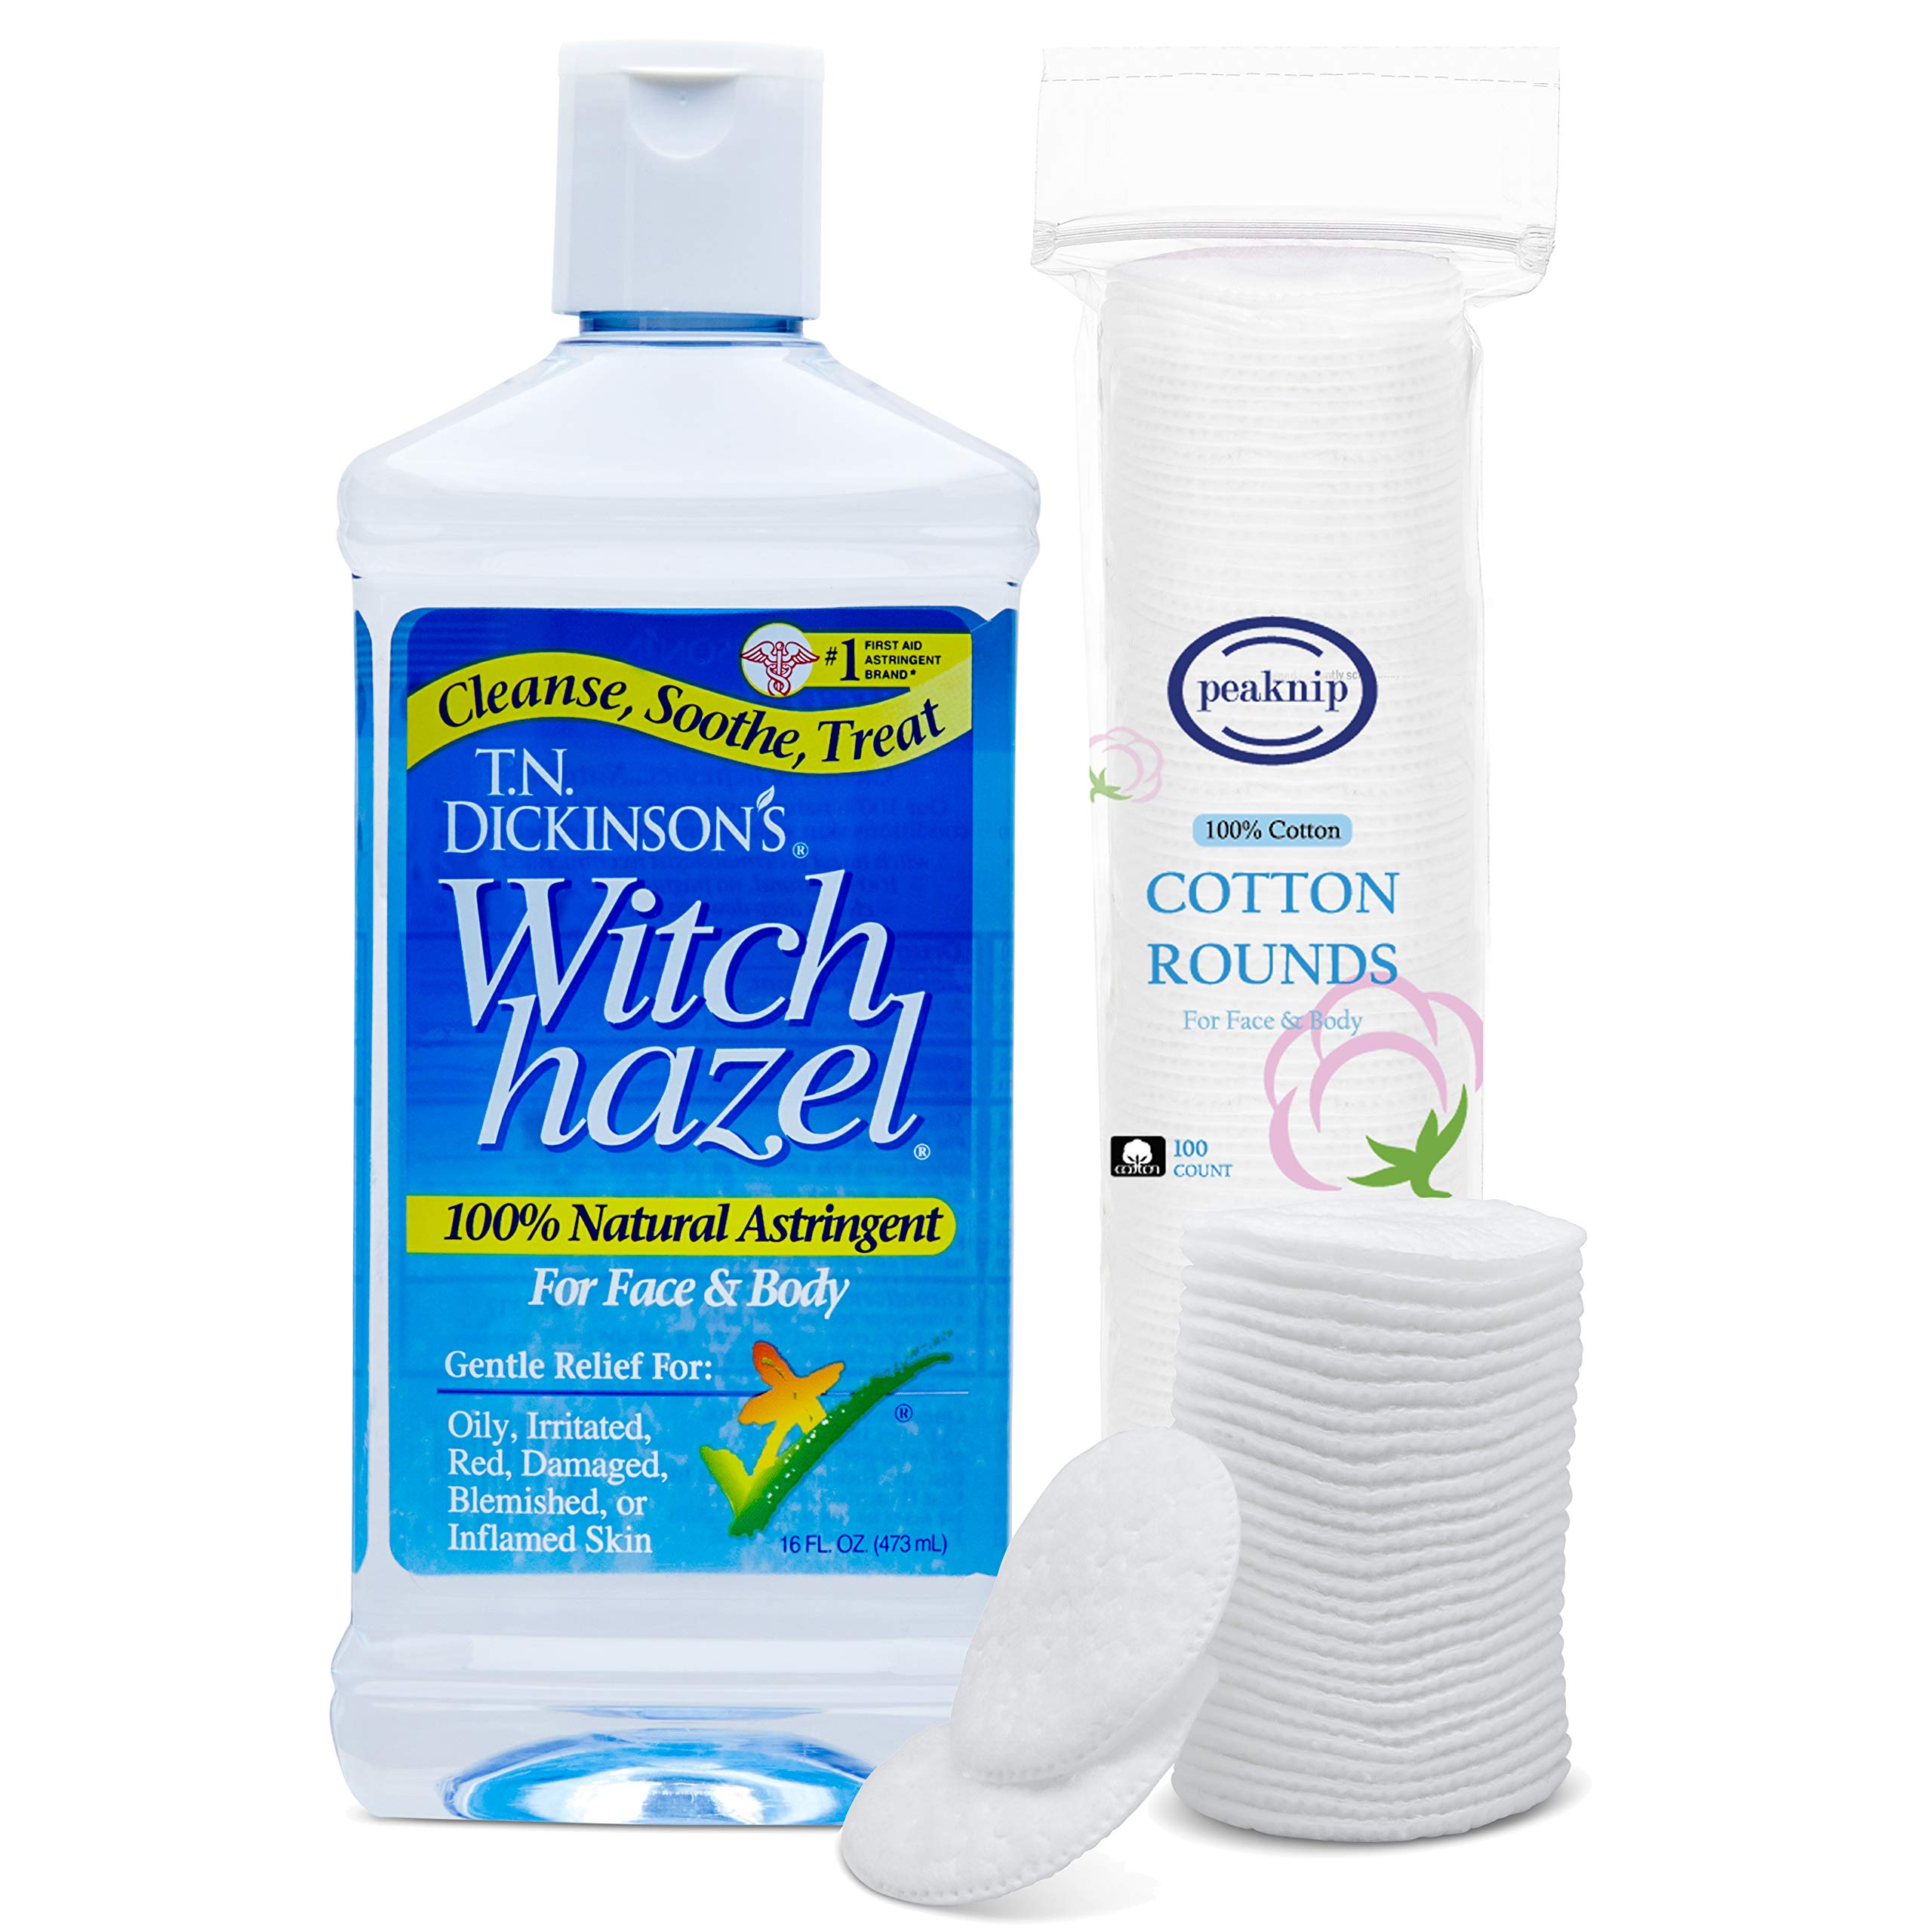 T.N. Dickinson's 16 oz. Witch Hazel 100% Natural Astringent with 100 Pcs. Cotton Rounds by Peaknip